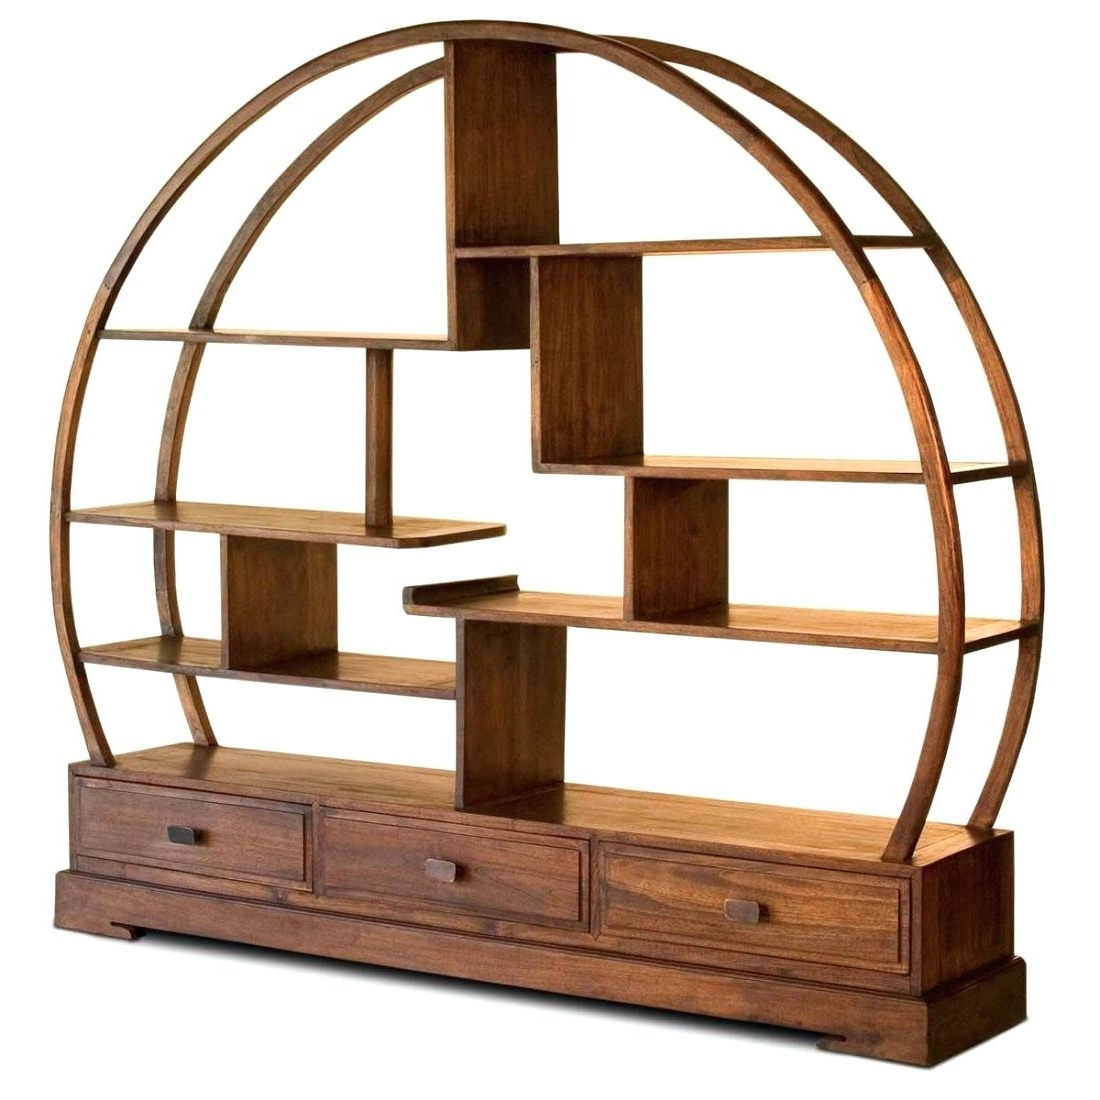 Round Bookcases With Regard To Most Recent Round Bookcase Bookcases Target Bookcases For Sale Near Me (View 14 of 15)